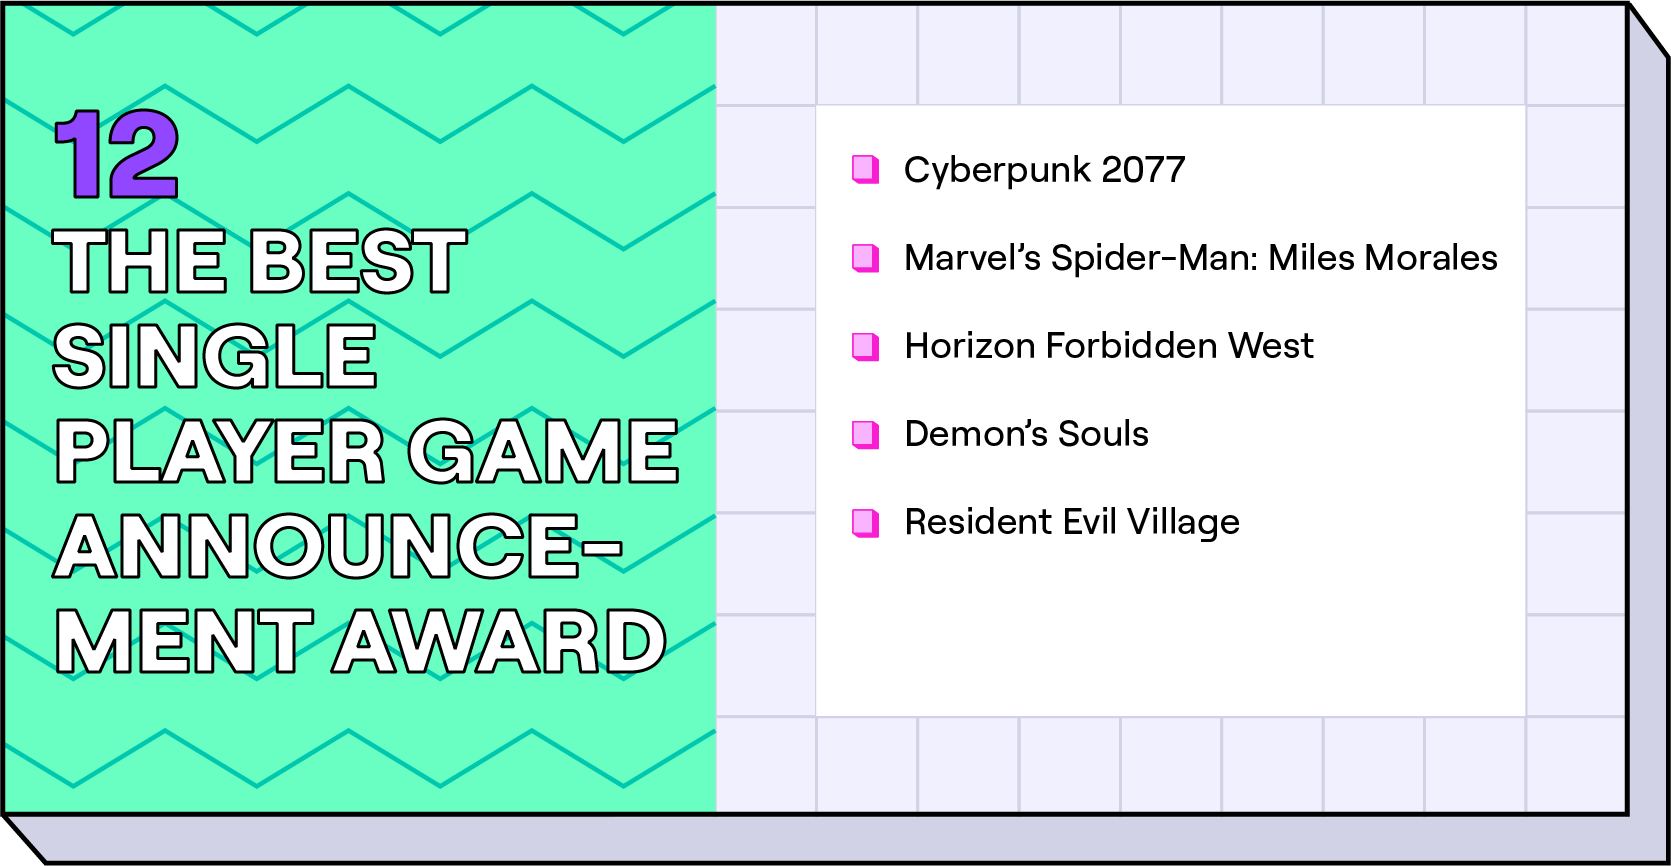 The Best Single Player Game Announcement Award